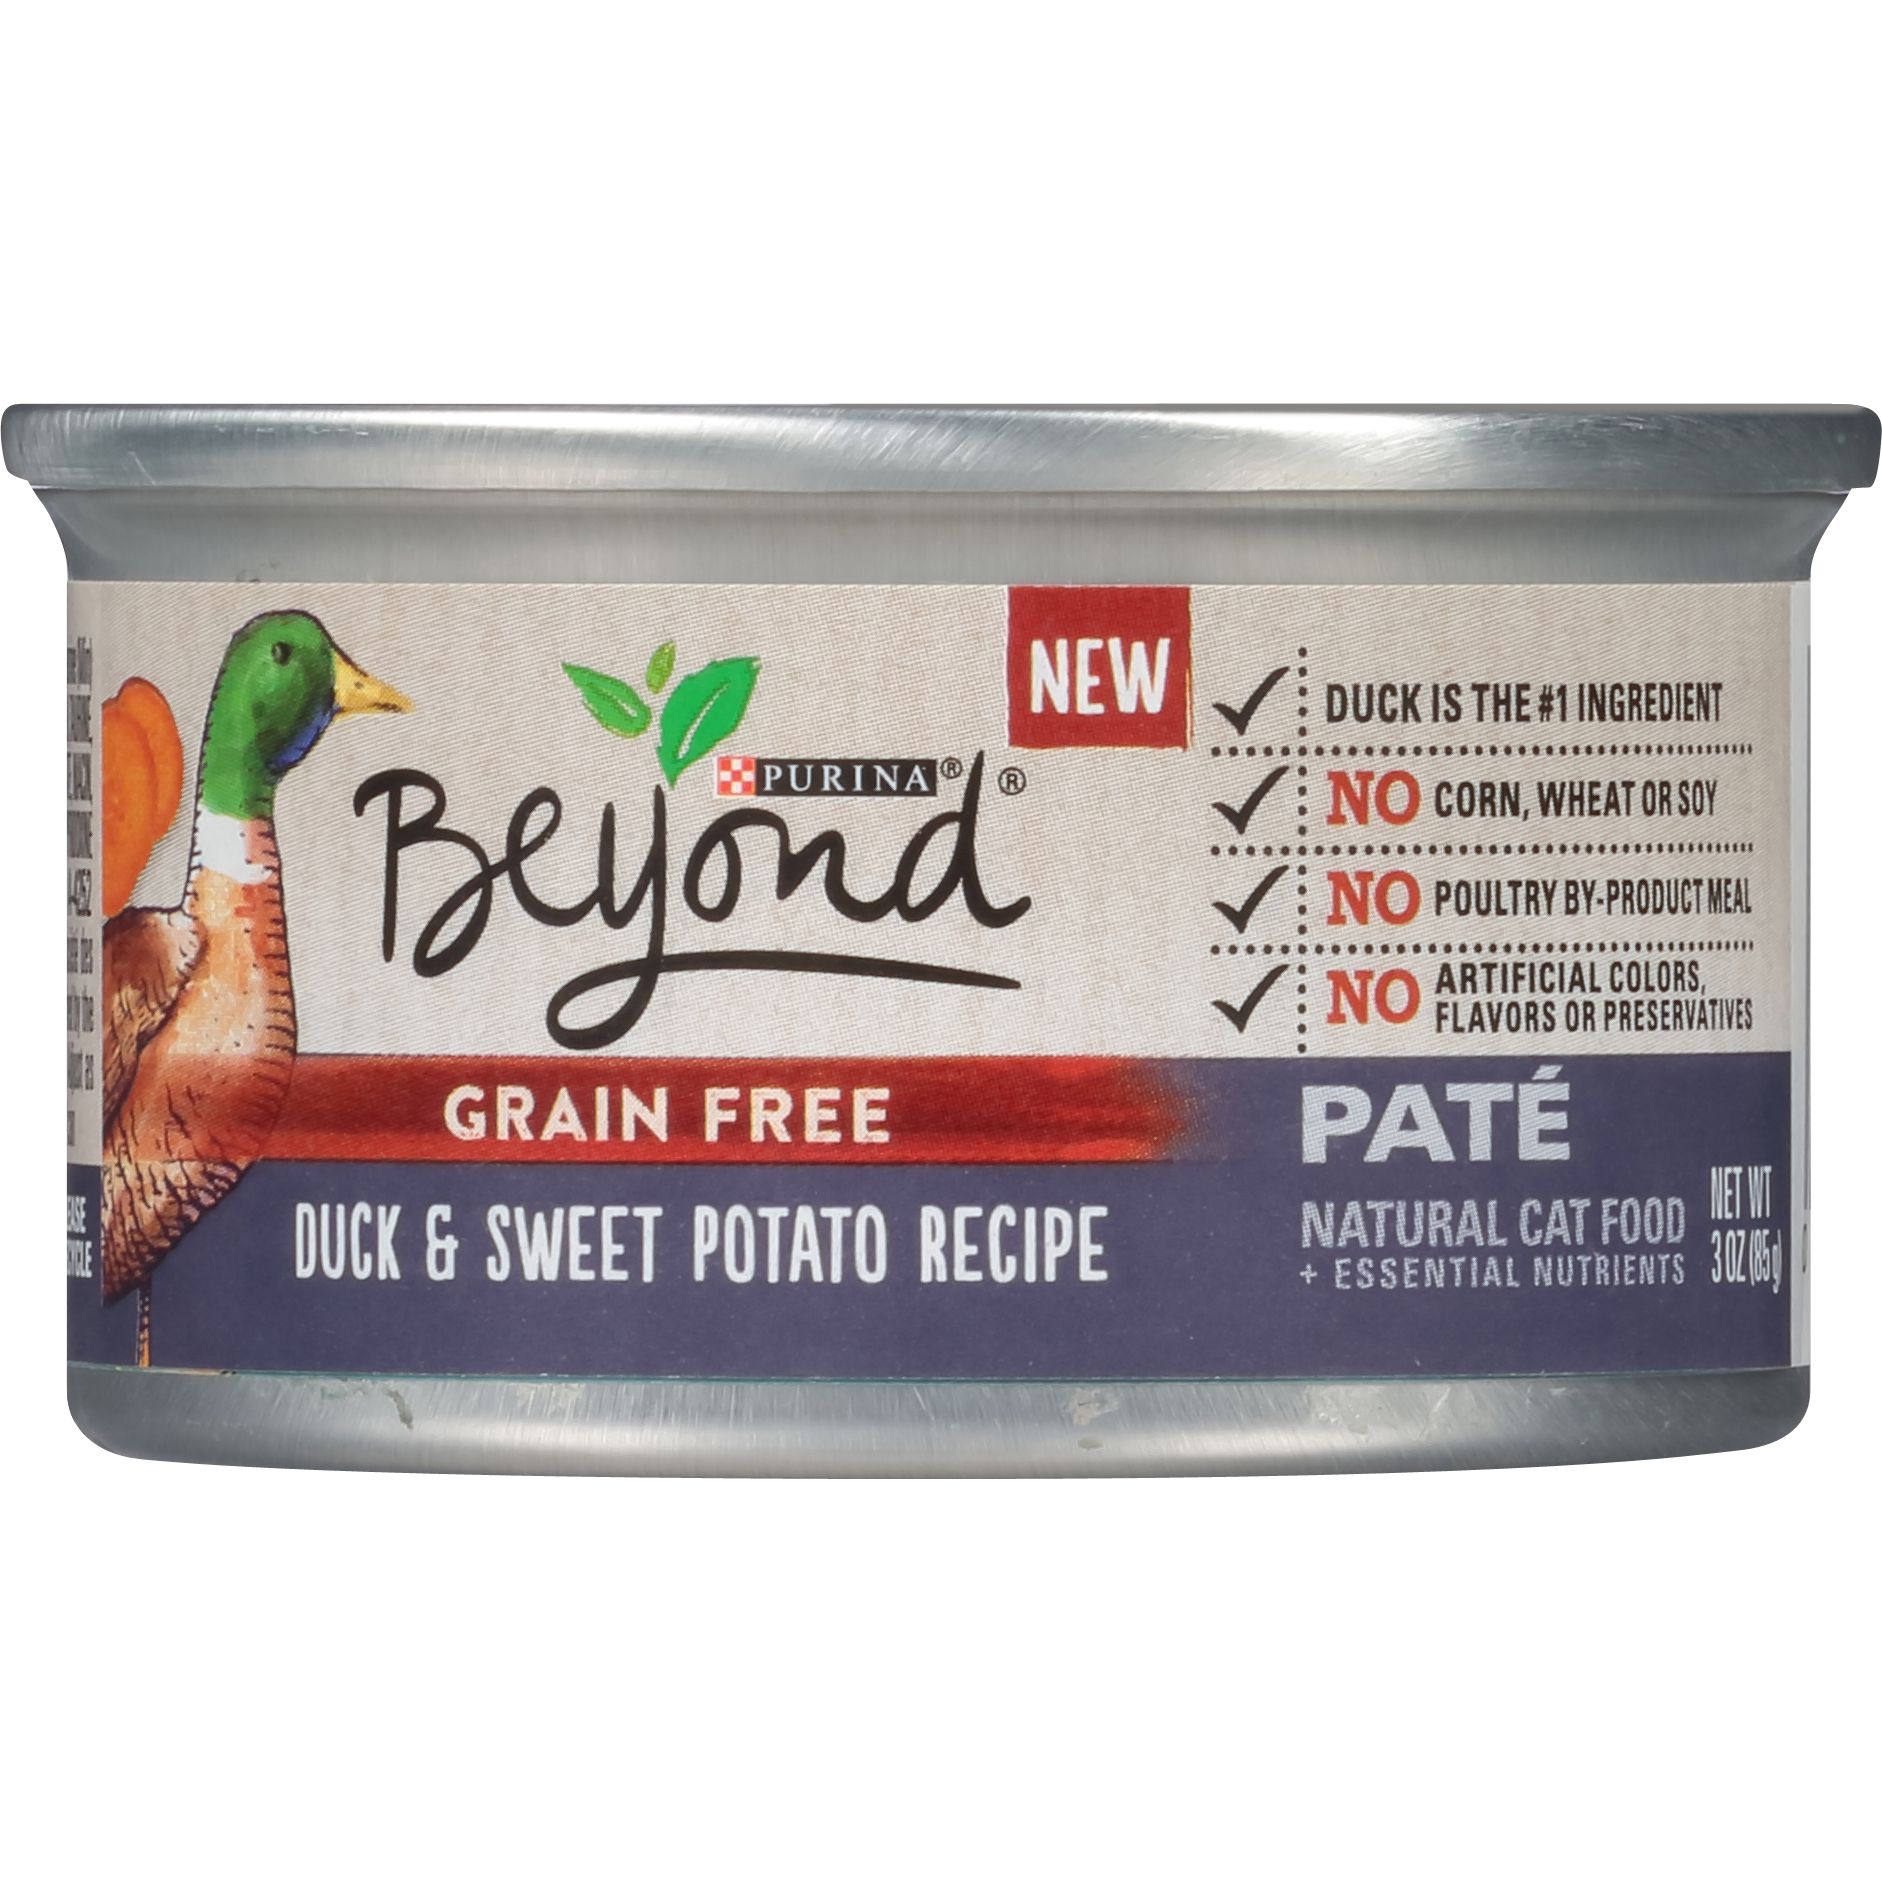 Purina Beyond Grain Free Duck & Sweet Potato Recipe Pate Wet Cat Food, 3 Oz. Cans (12 Pack)